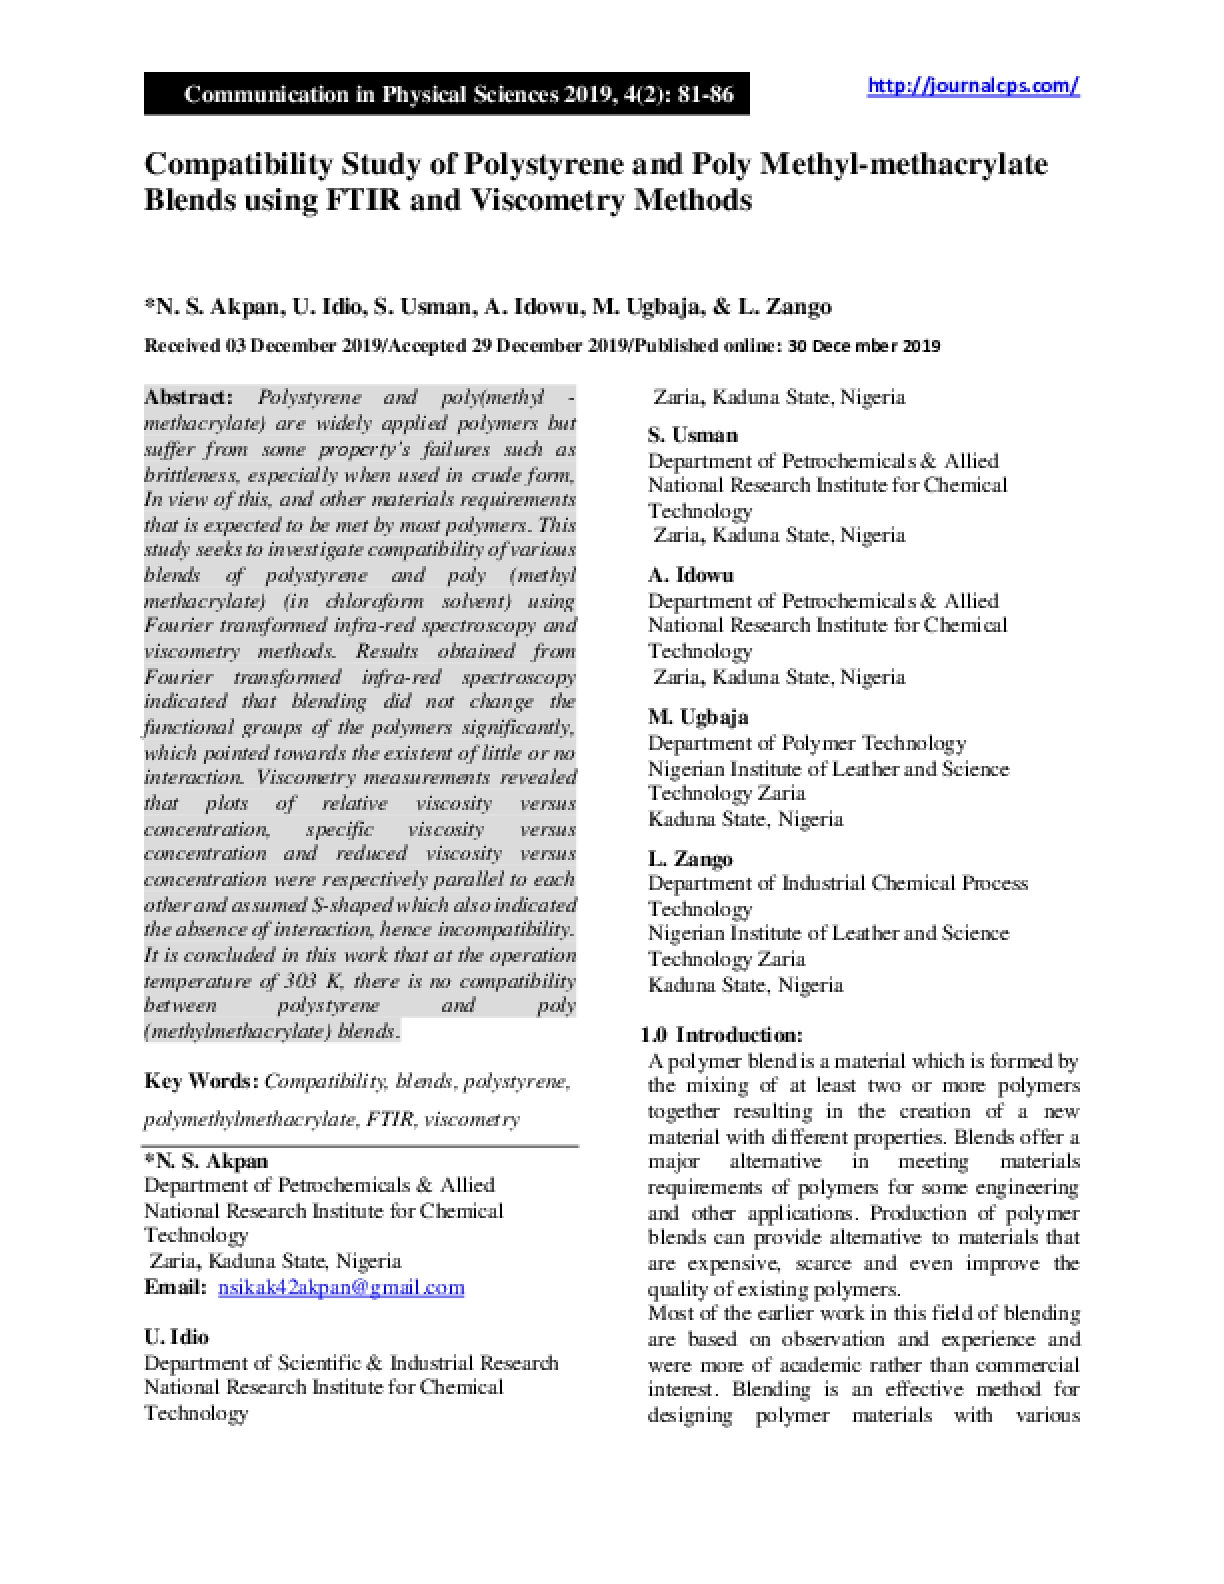 Compatibility Study of Polystyrene and Poly Methyl-methacrylate Blends using FTIR and Viscometry Methods